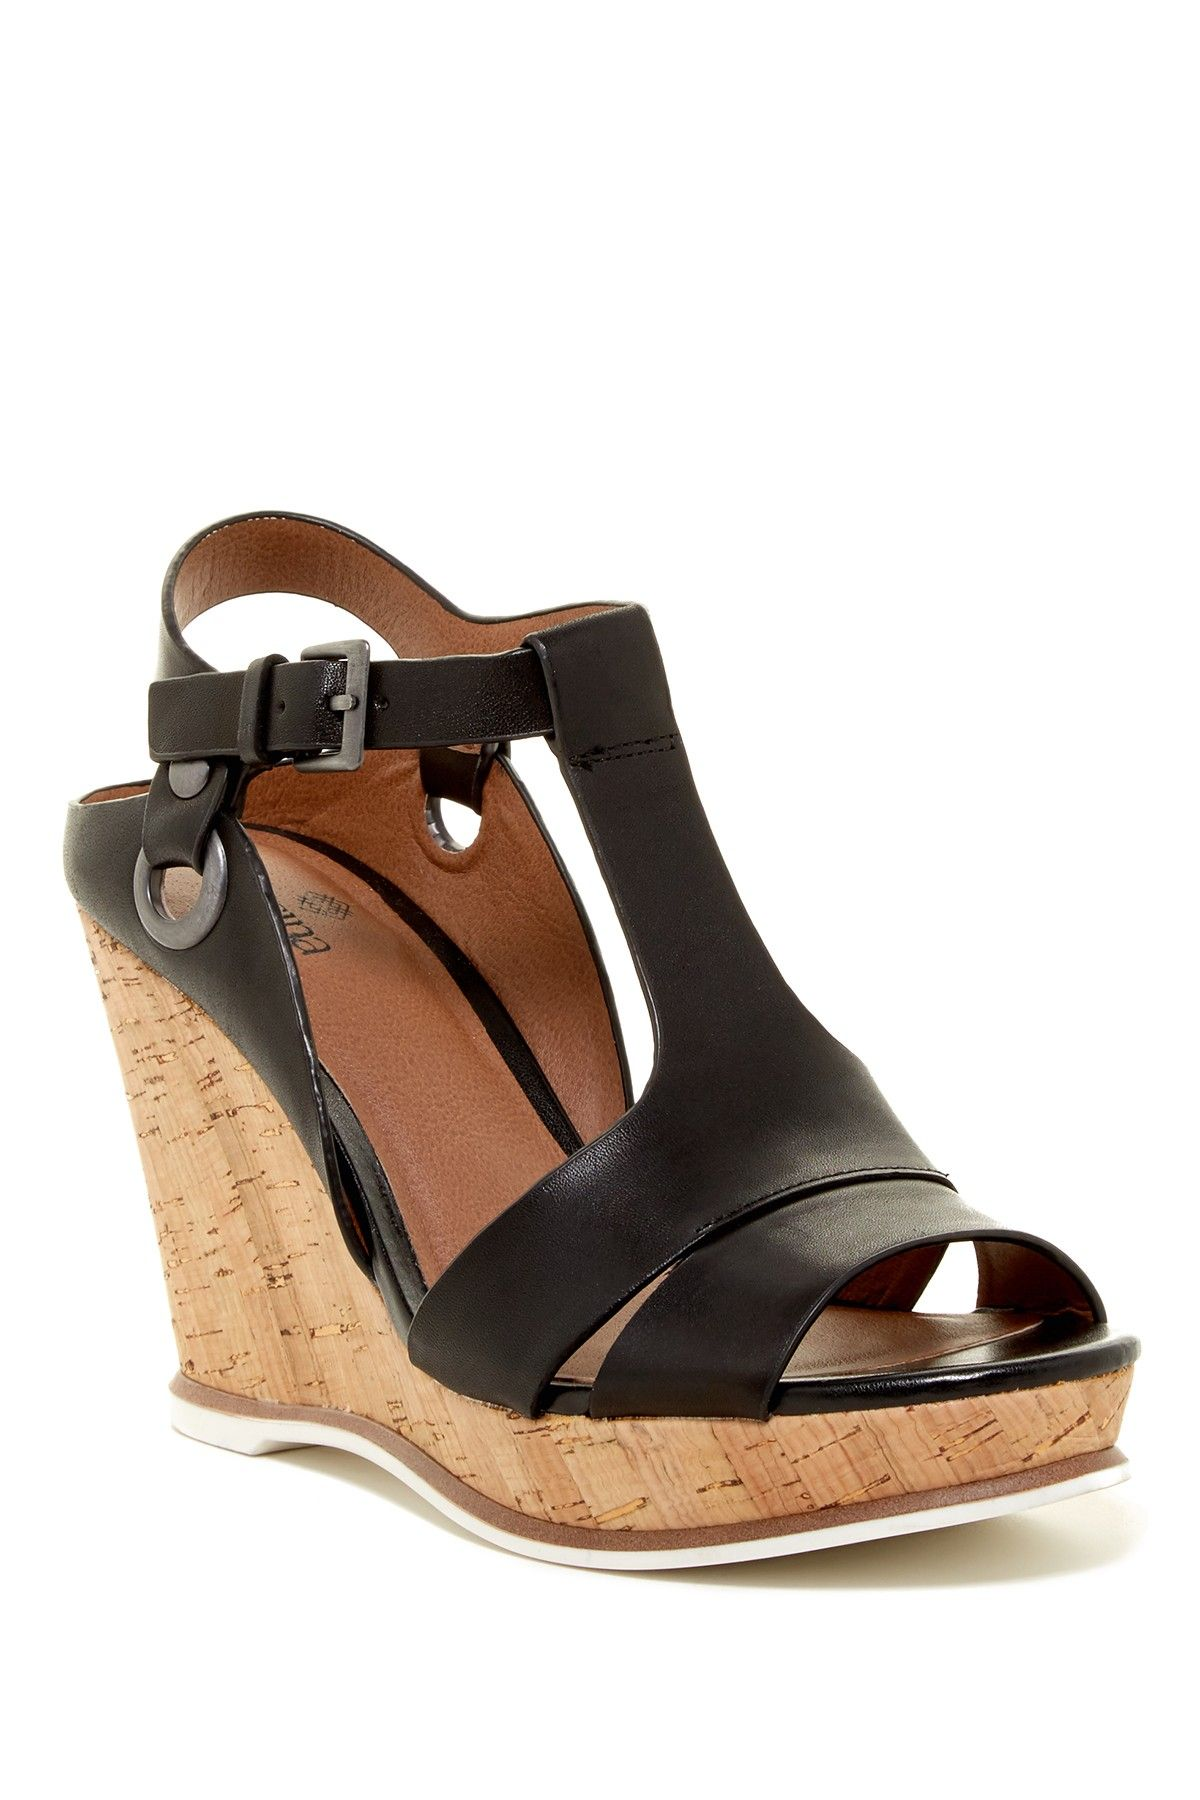 14d7f04b765 Tyra Platform Wedge Sandal - Wide Width Available by SUSINA on   nordstrom rack